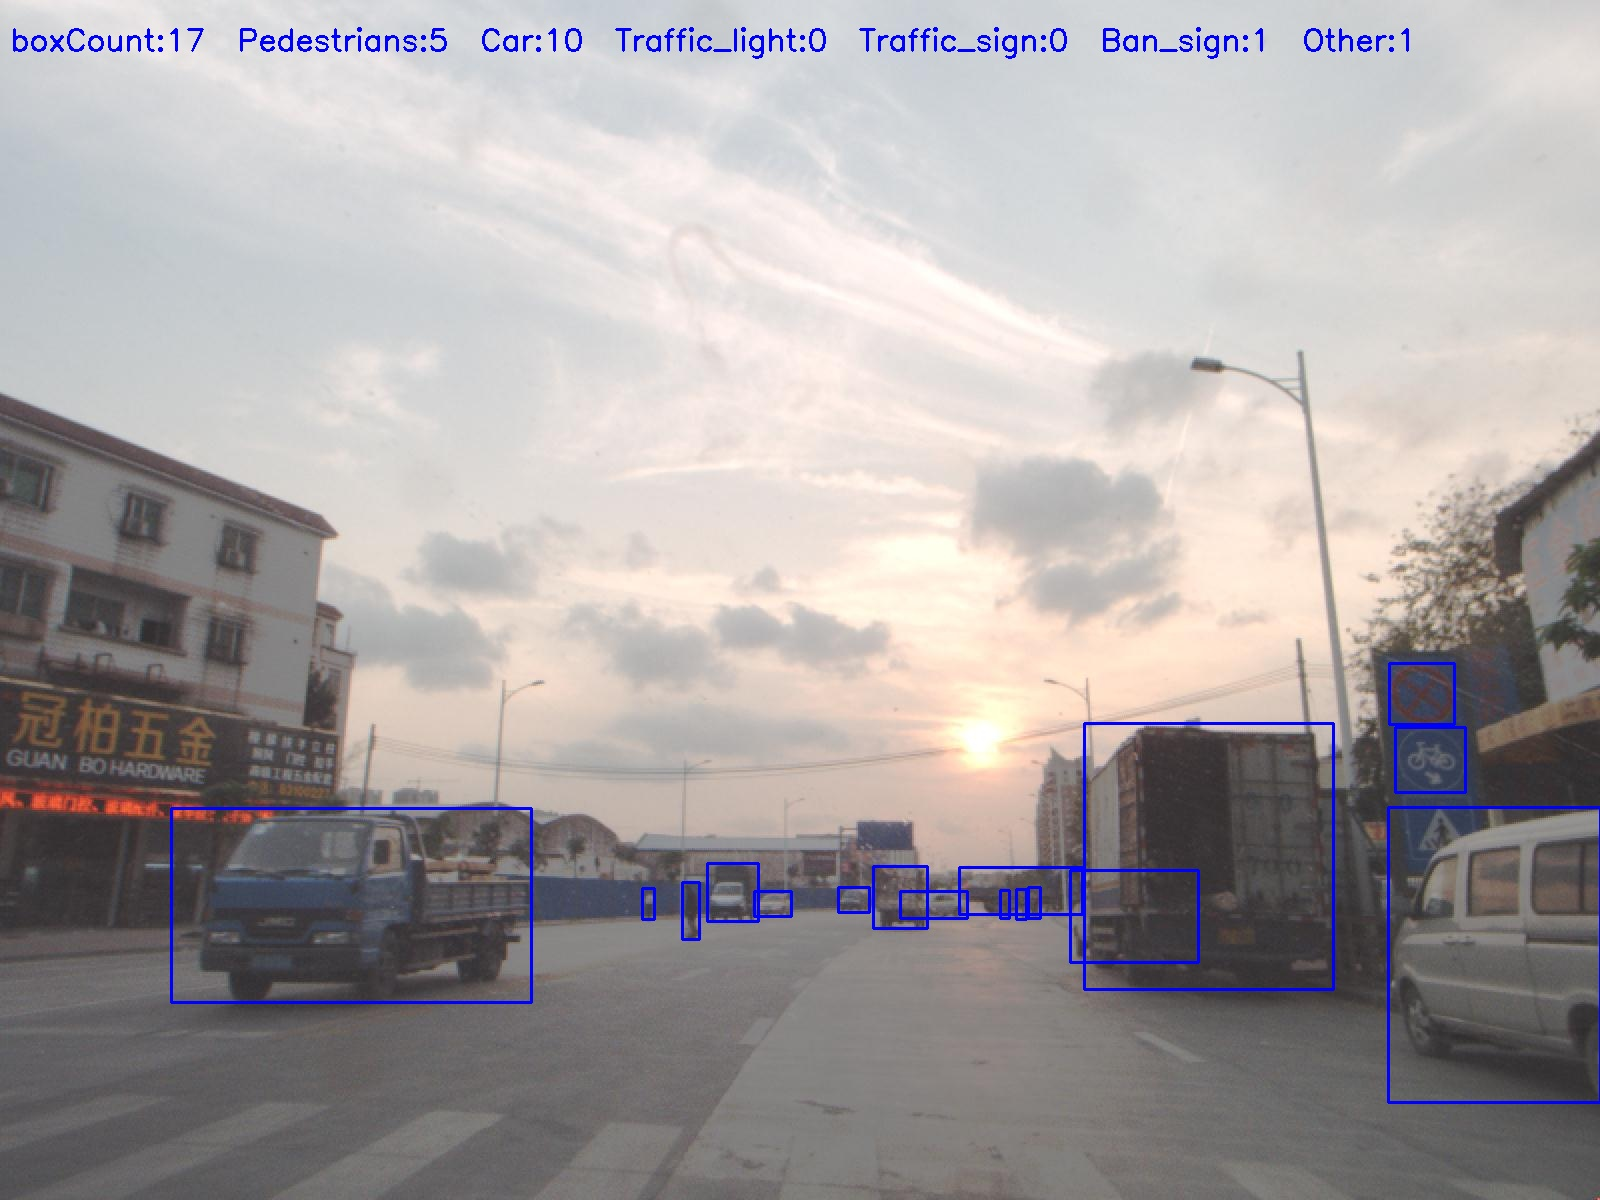 530,000 Steetview Images _530,000 Images with Bounding box Annotation_Autonomous Driving Data Solution_Datatang